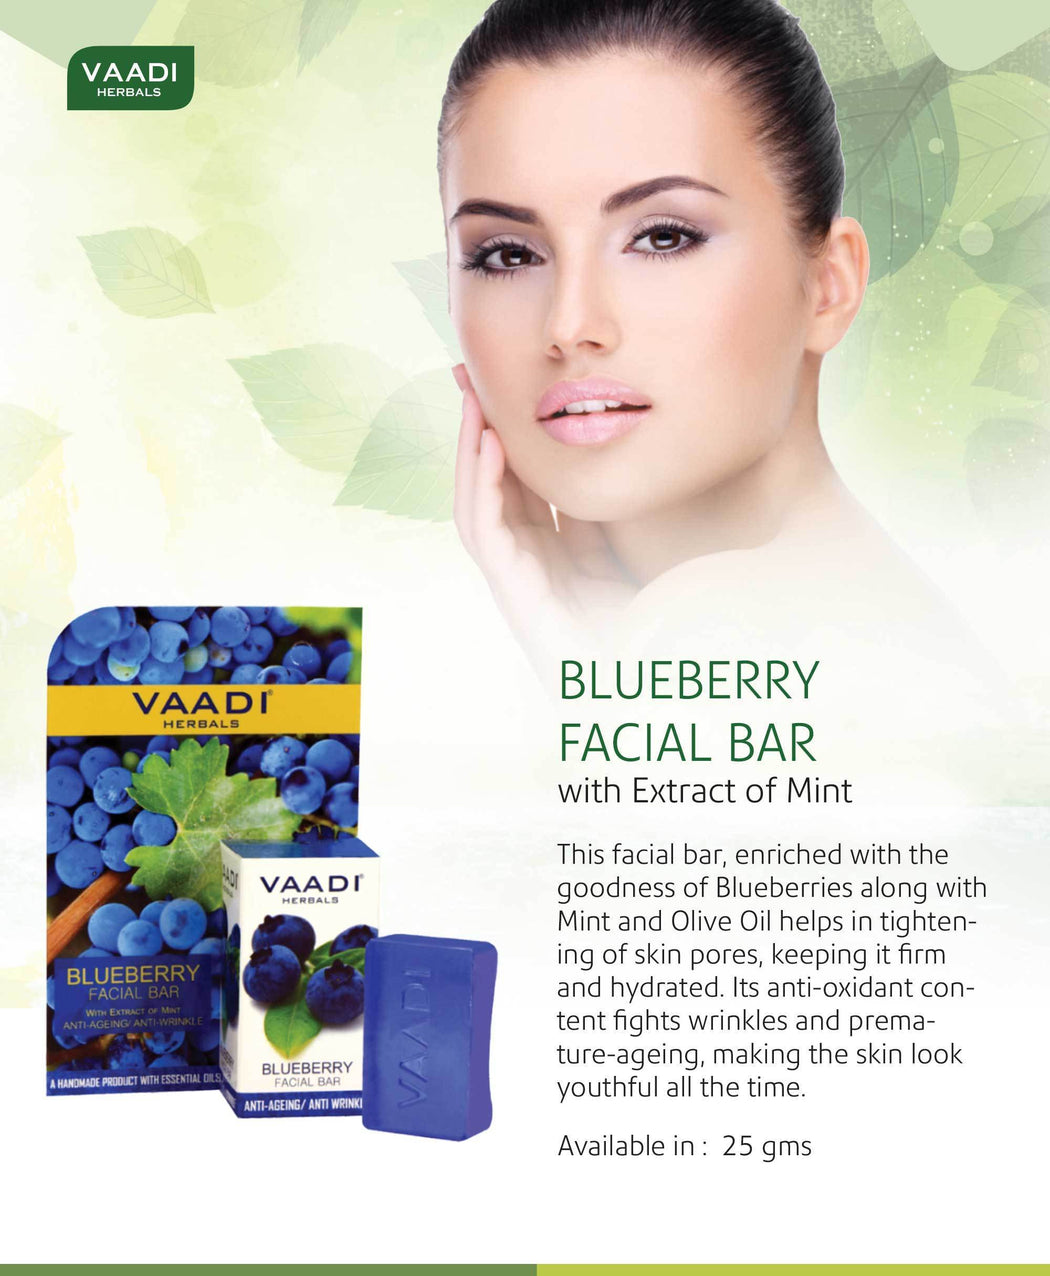 Organic Blueberry Facial Bar with Mint Extract & Olive Oil - Prevents Wrinkles - Makes Skin Youthful (6 x 25 gms/0.9 oz)